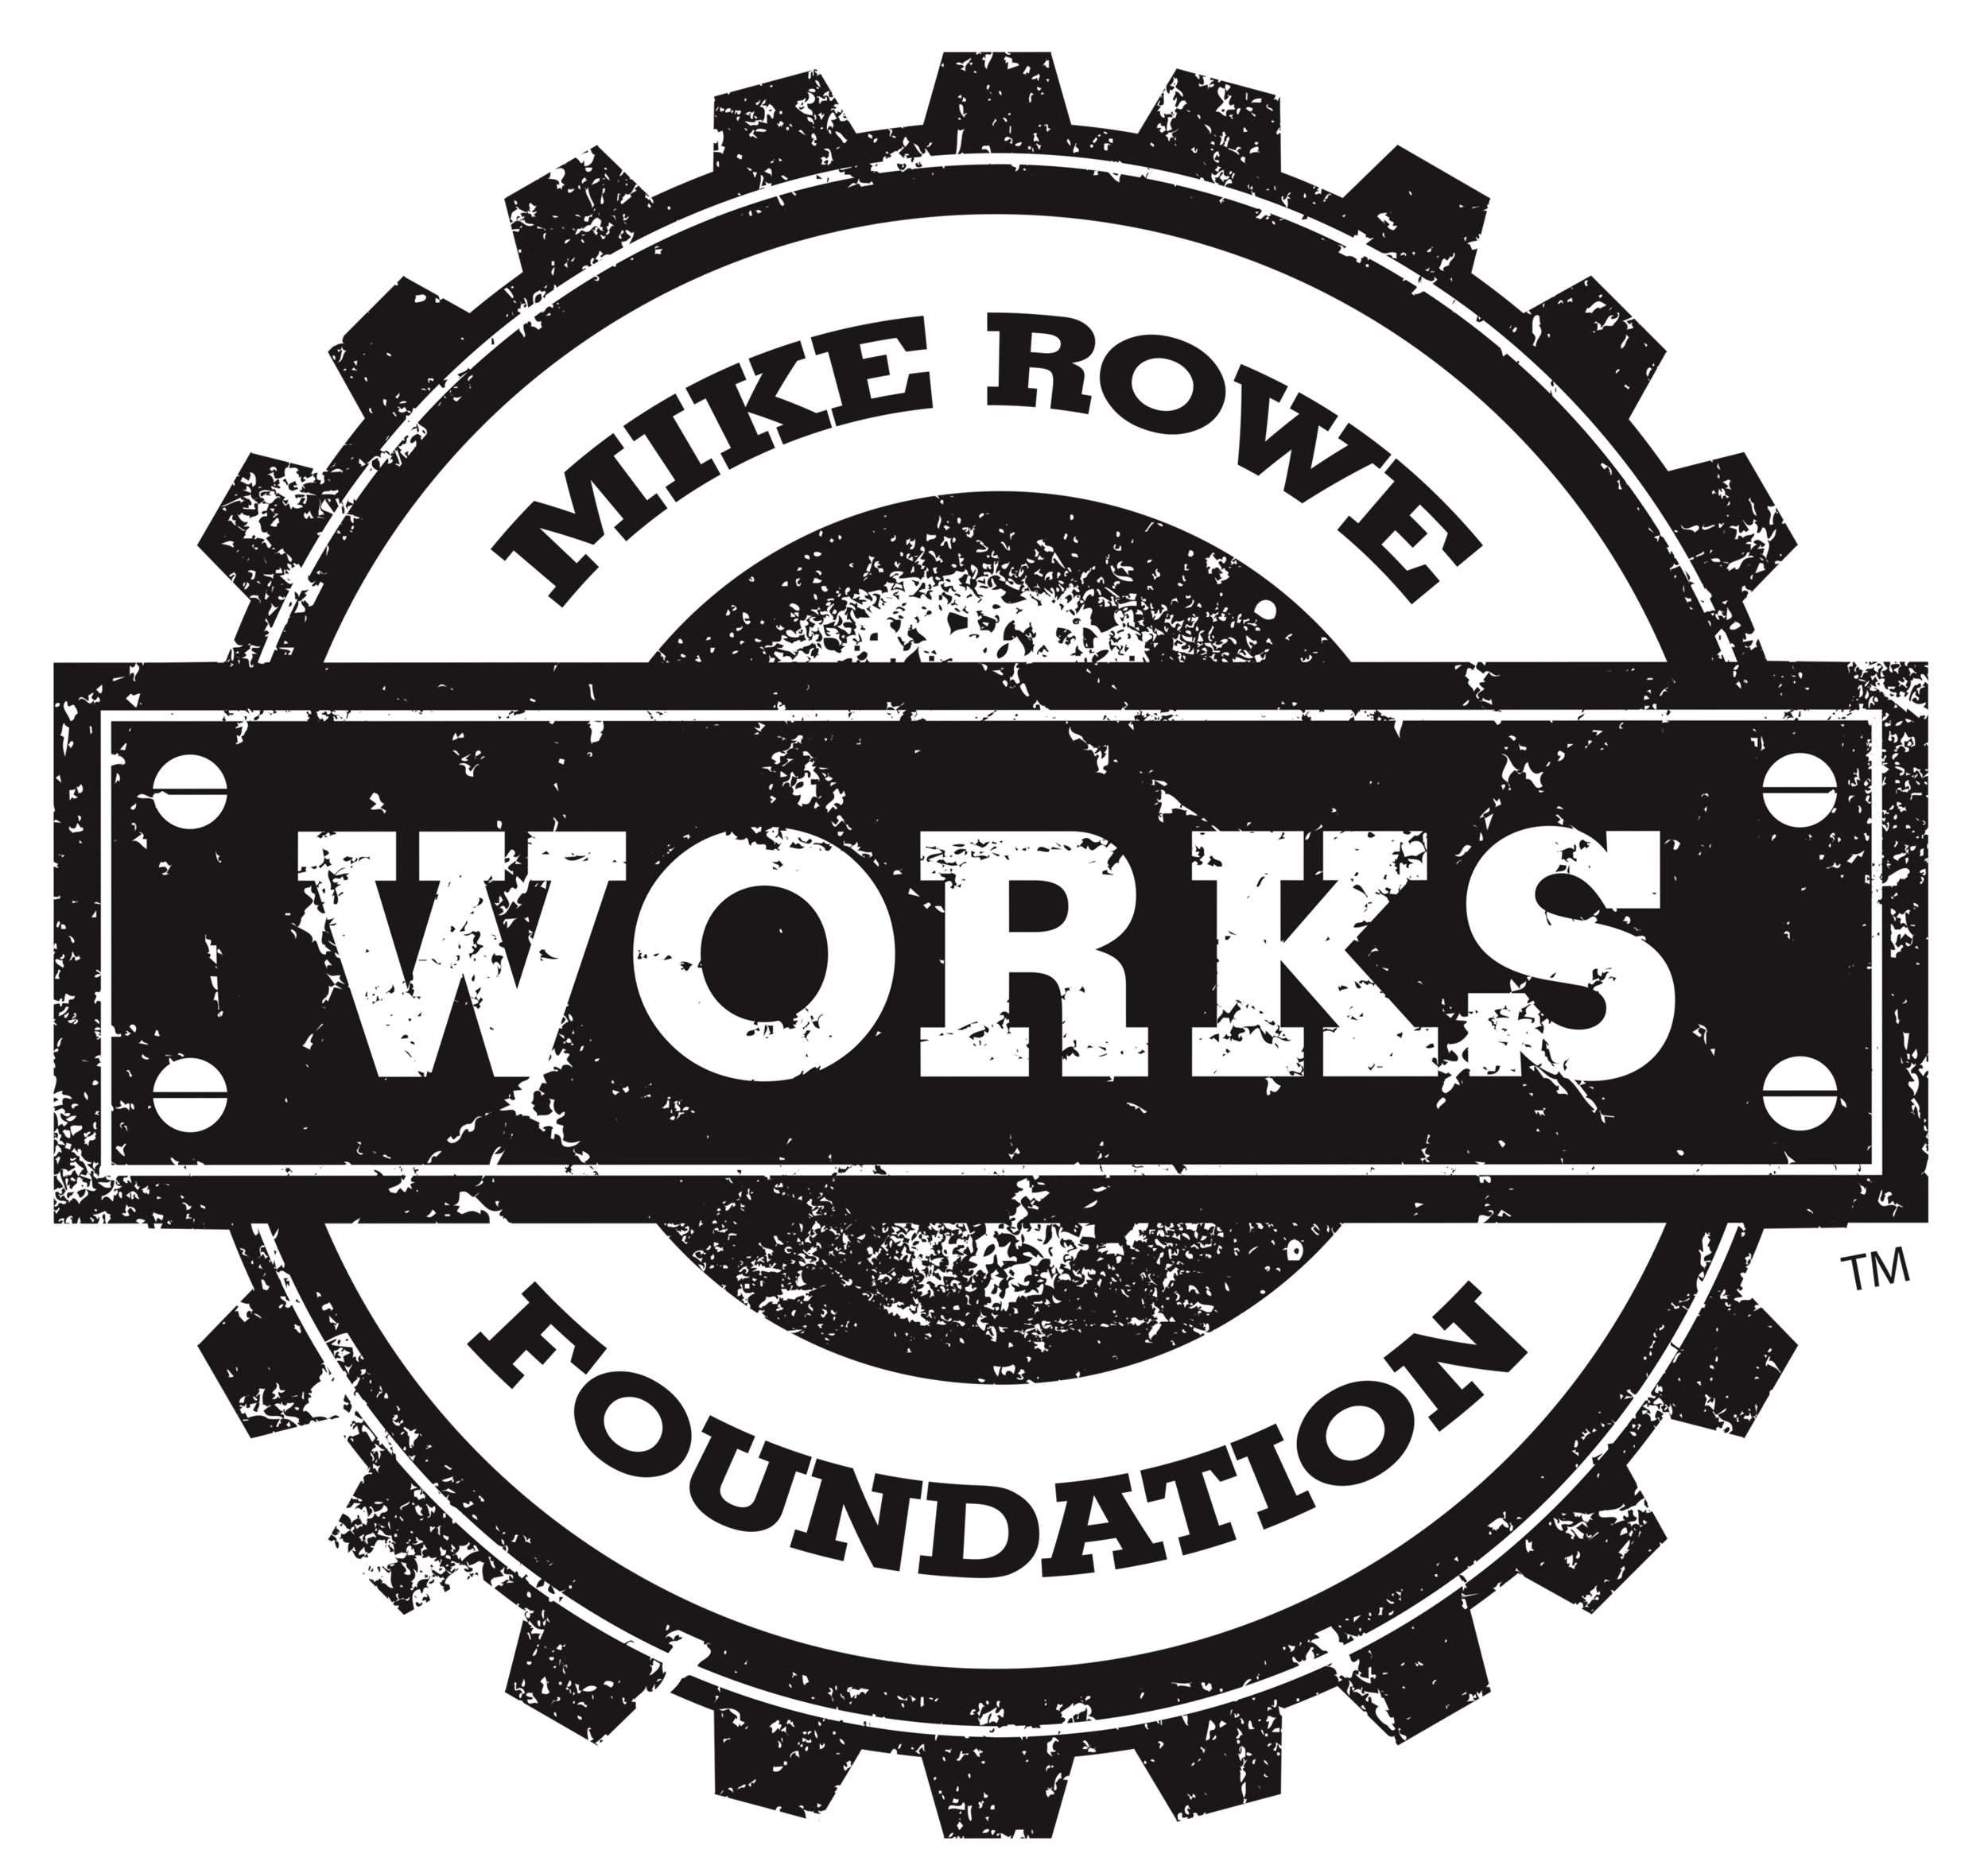 Mike Rowe Works Foundation - Profoundly Disconnected (Dirty Jobs - Skilled Trades)